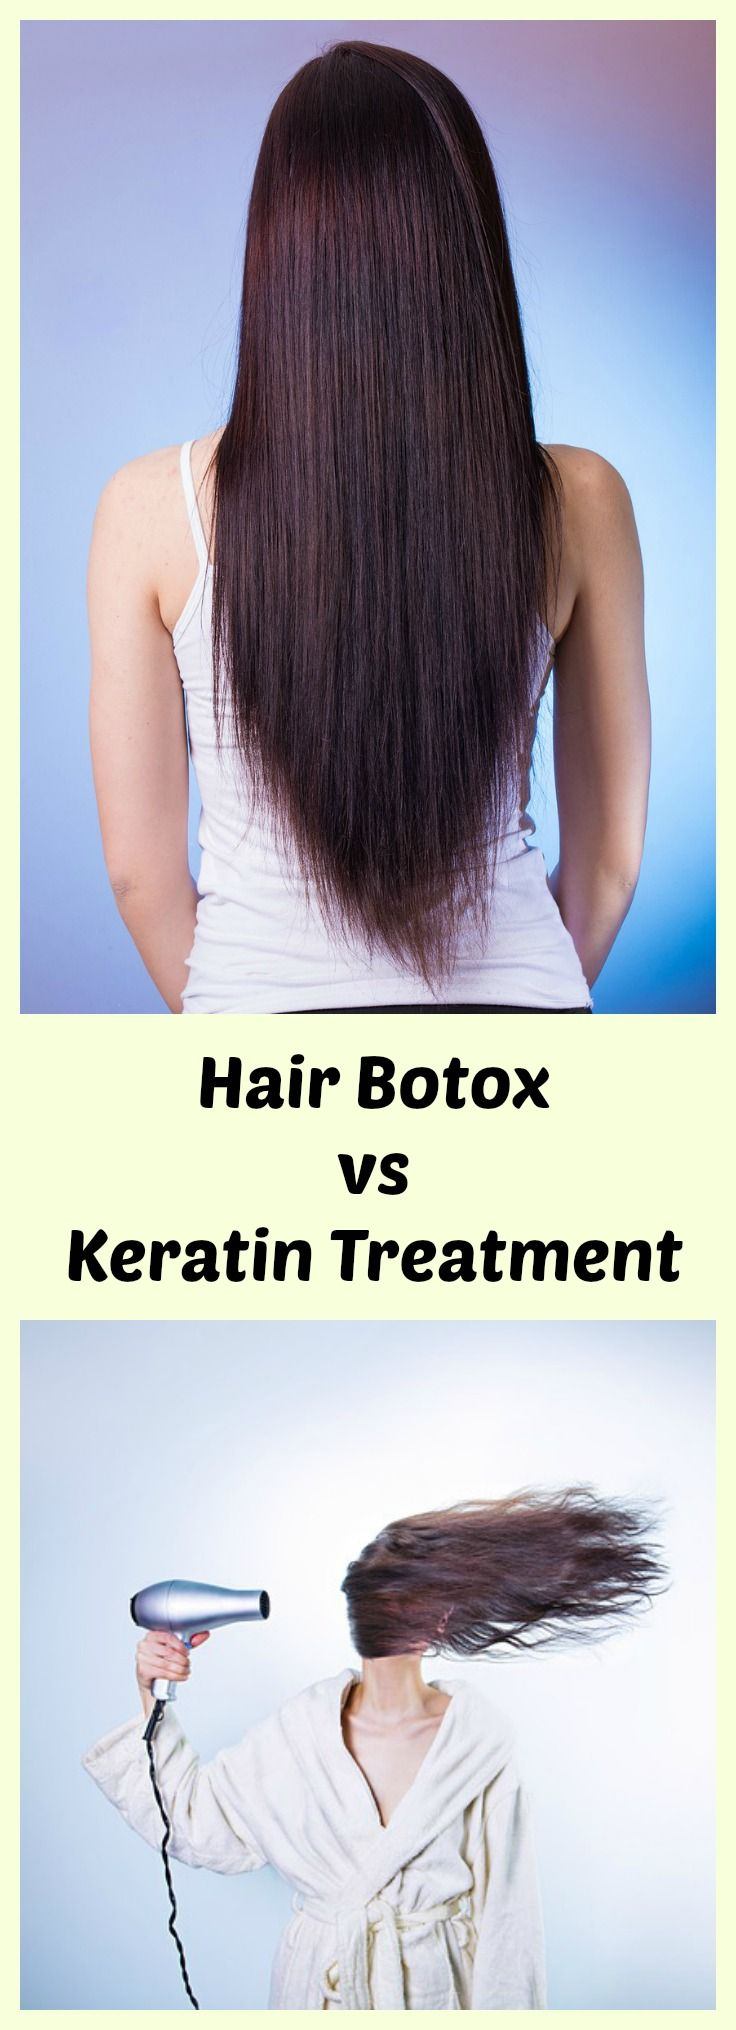 Hair Botox And Keratin Treatment Pros And Cons The Best Of